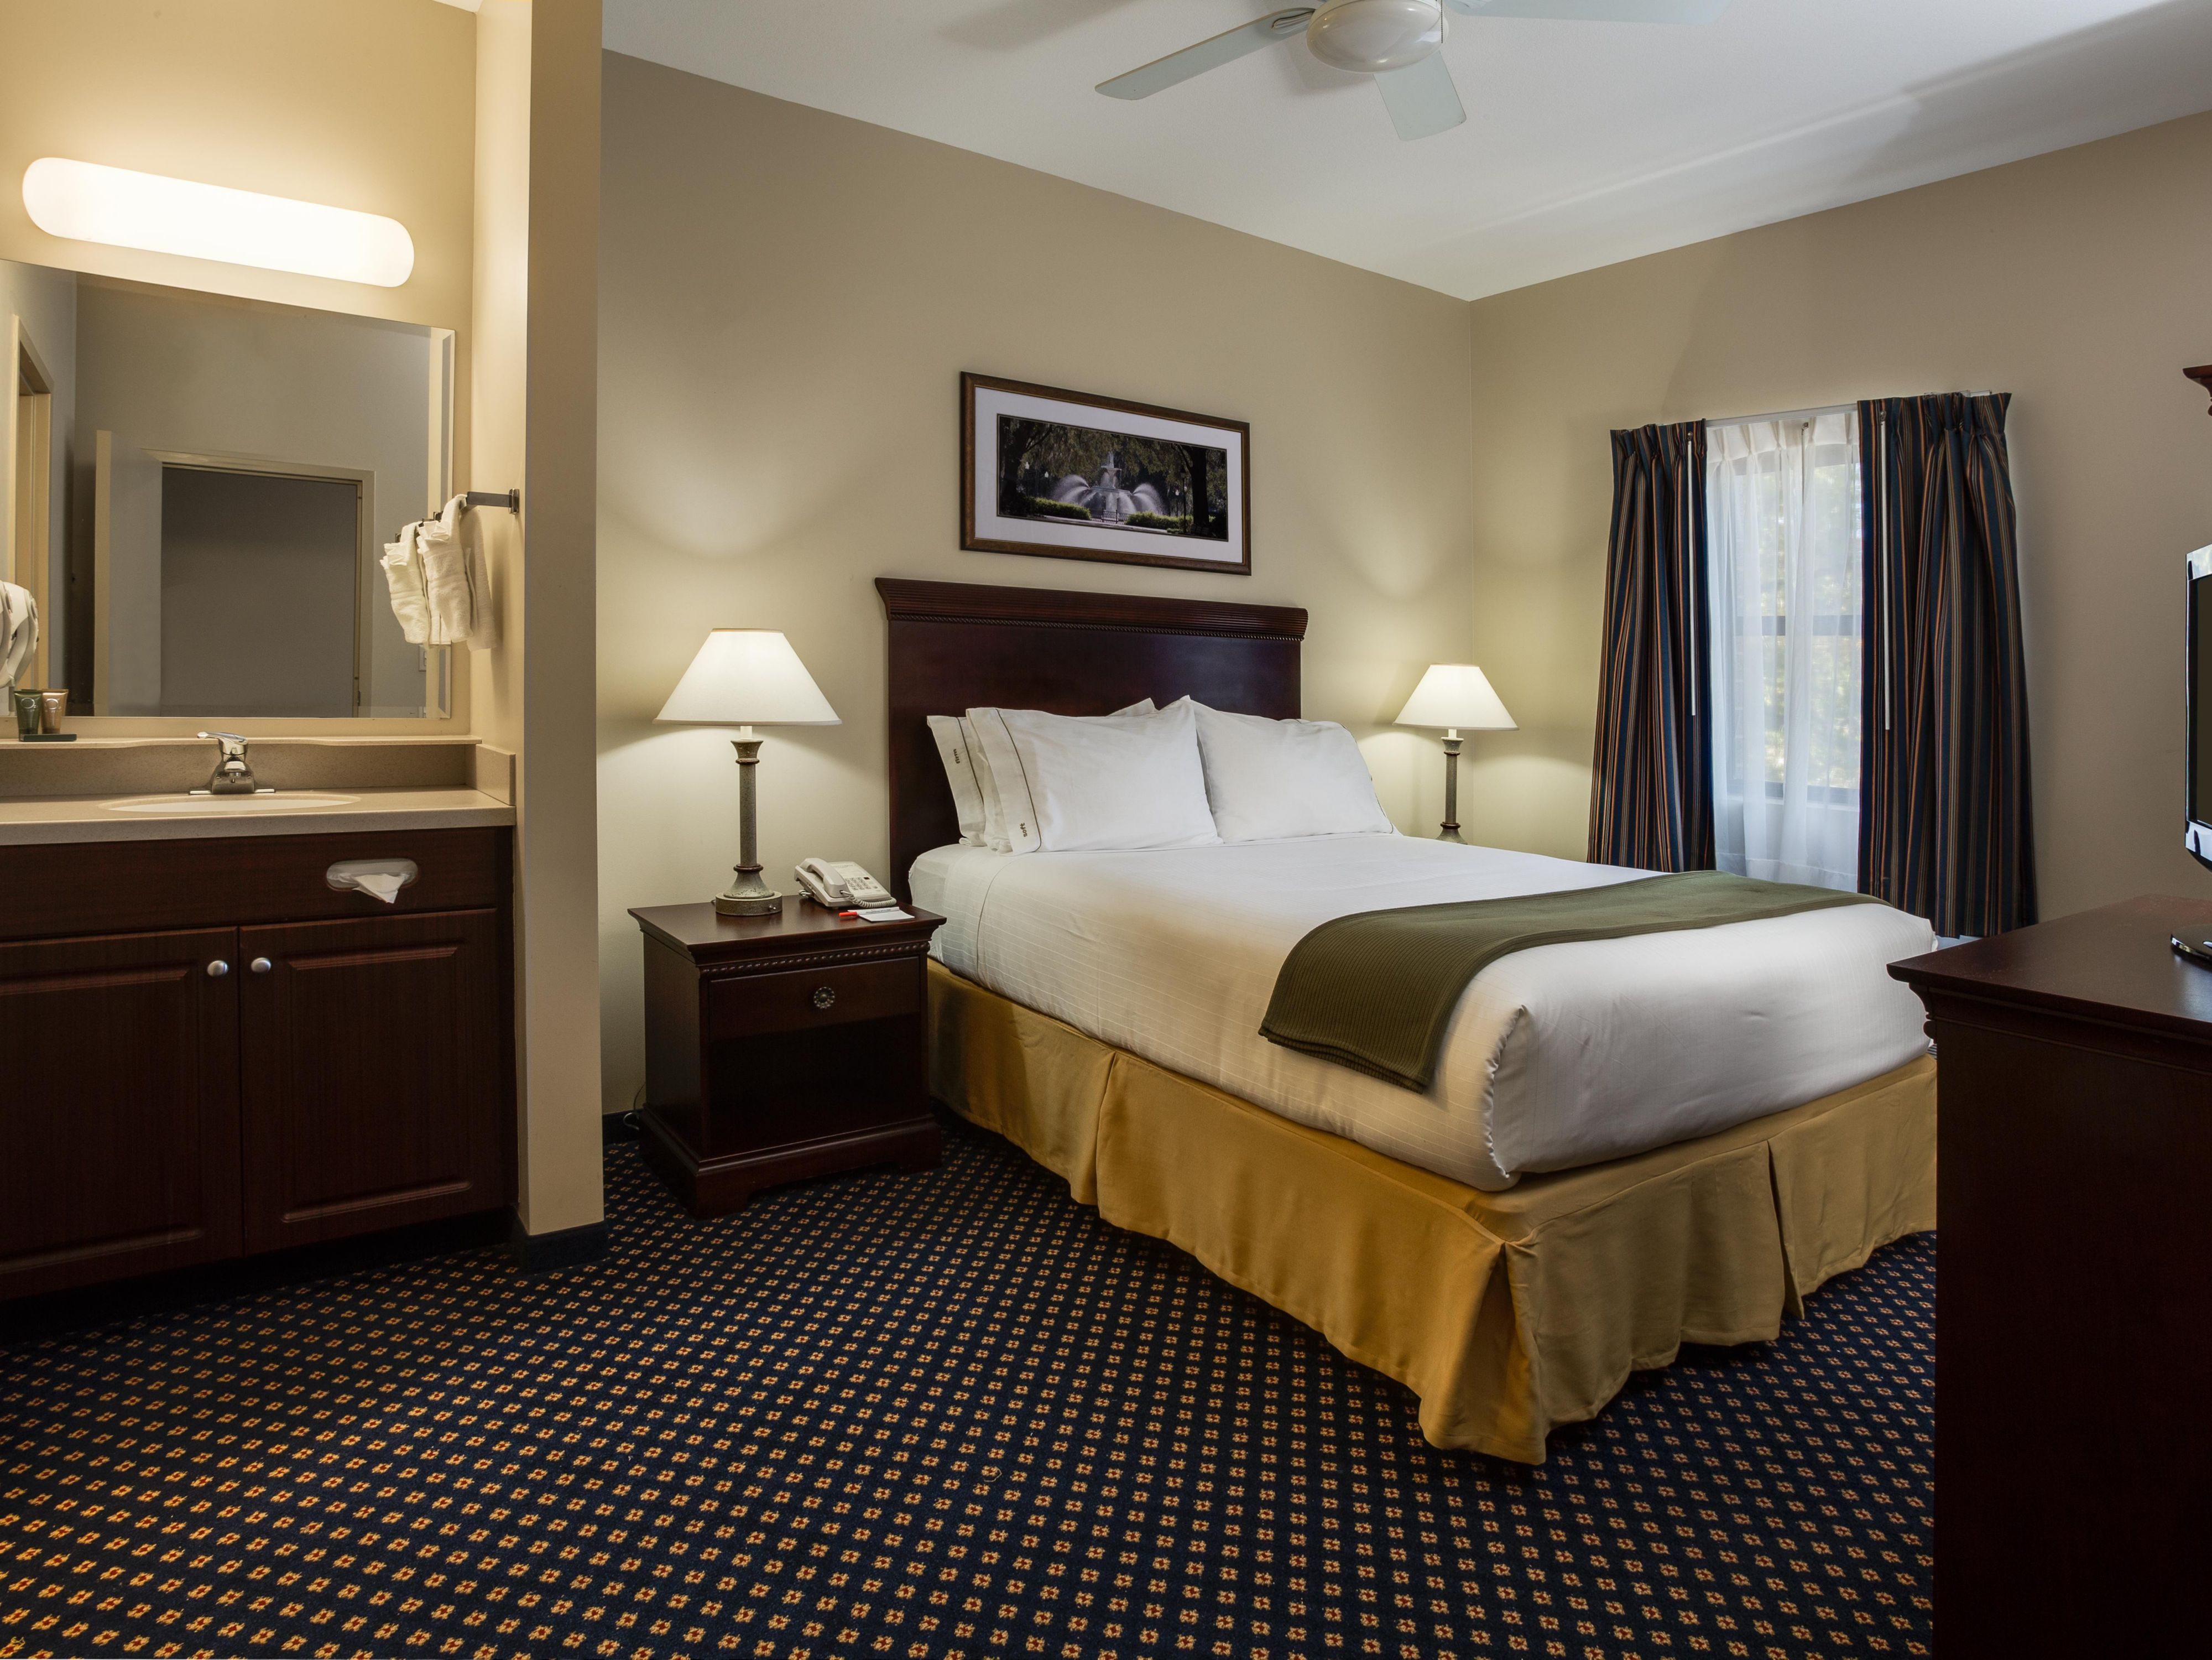 Rooms And Rates For Ihg Army Hotels Main Lodge At Fort Stewart